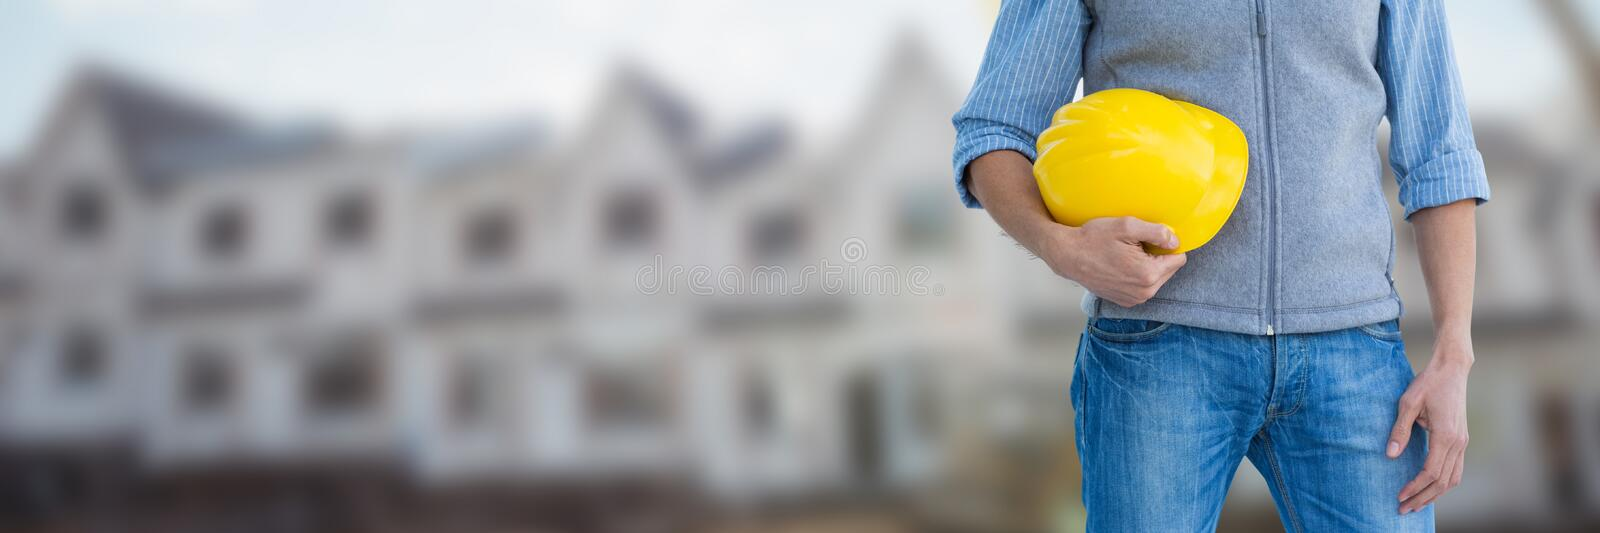 Construction Worker on building site holding helmet royalty free stock photos